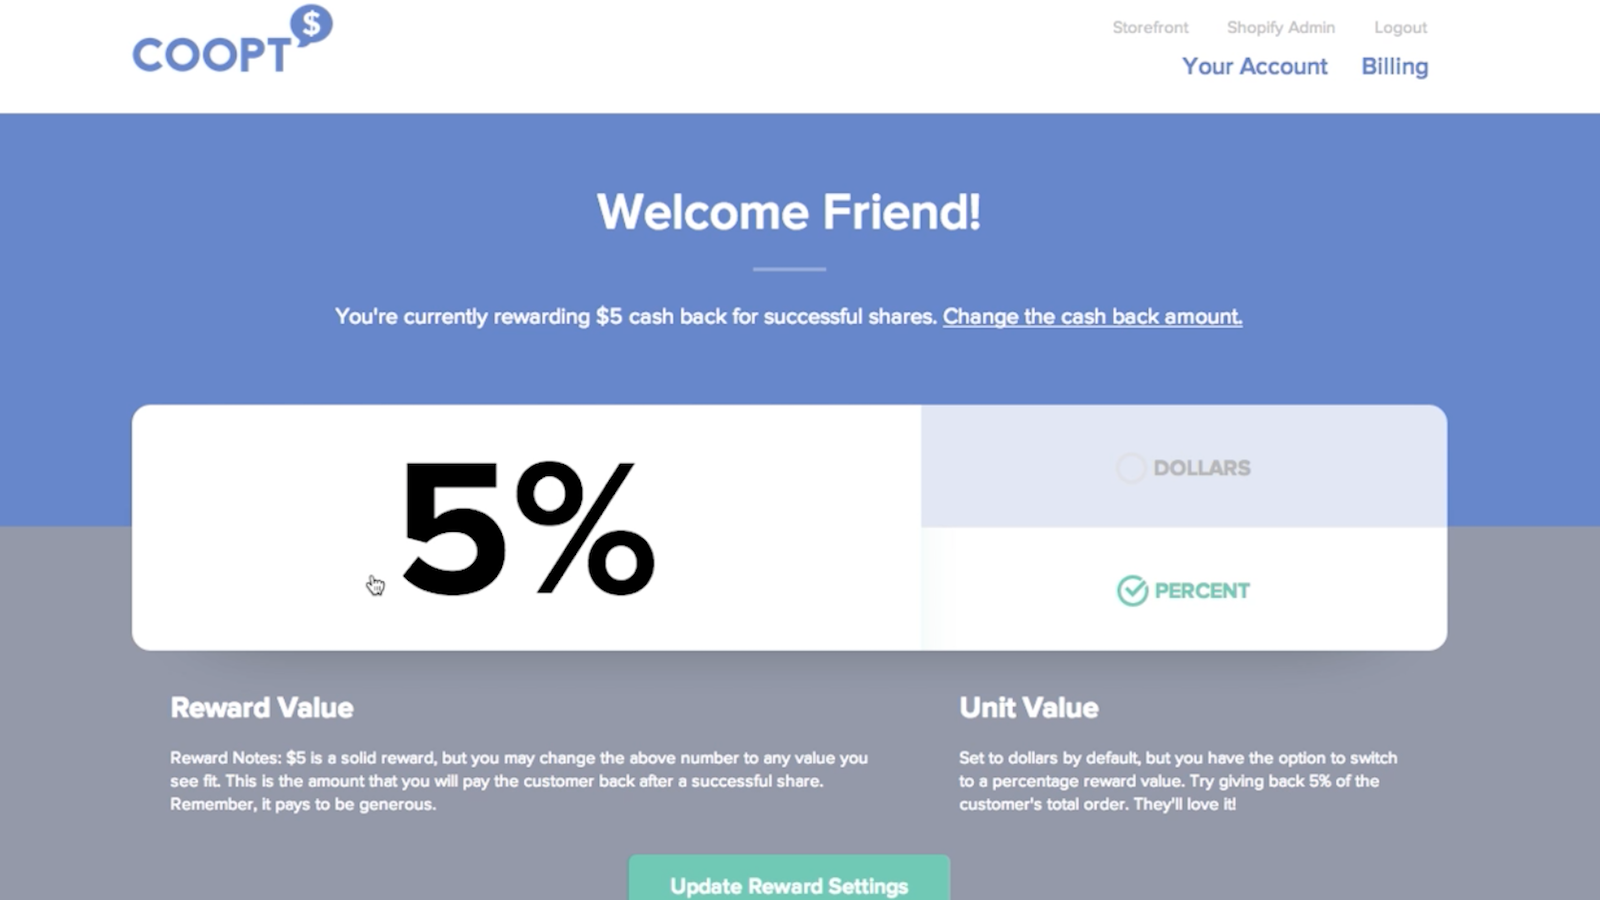 coopt referral offer settings